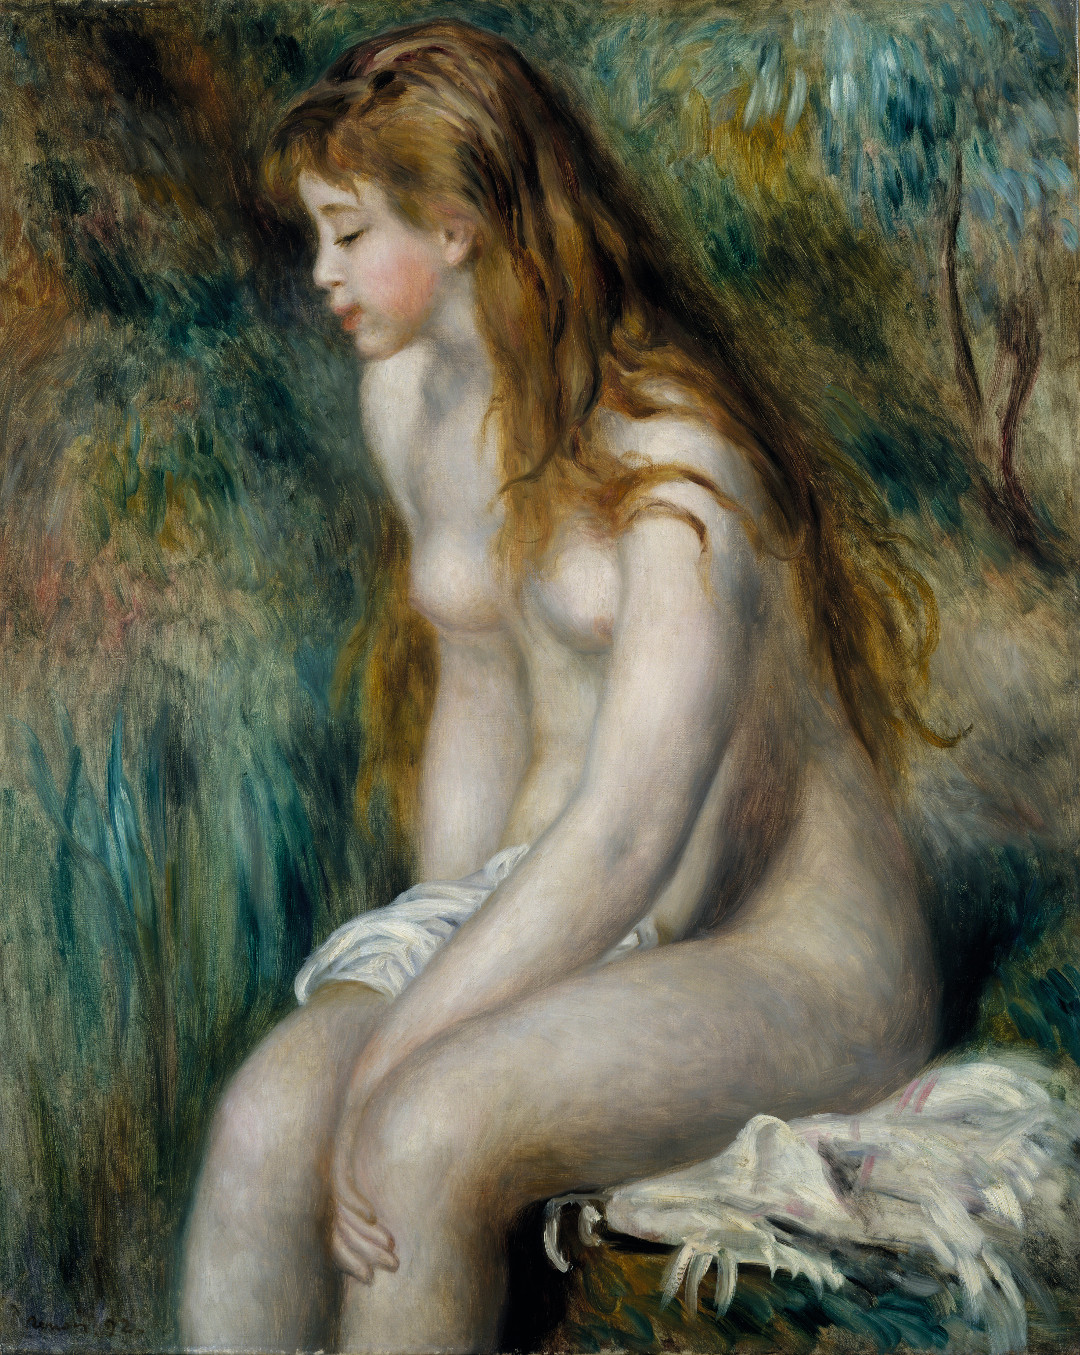 Pierre-Auguste Renoir, Young Girl Bathing, 1892, as reproduced in The Art of the Erotic